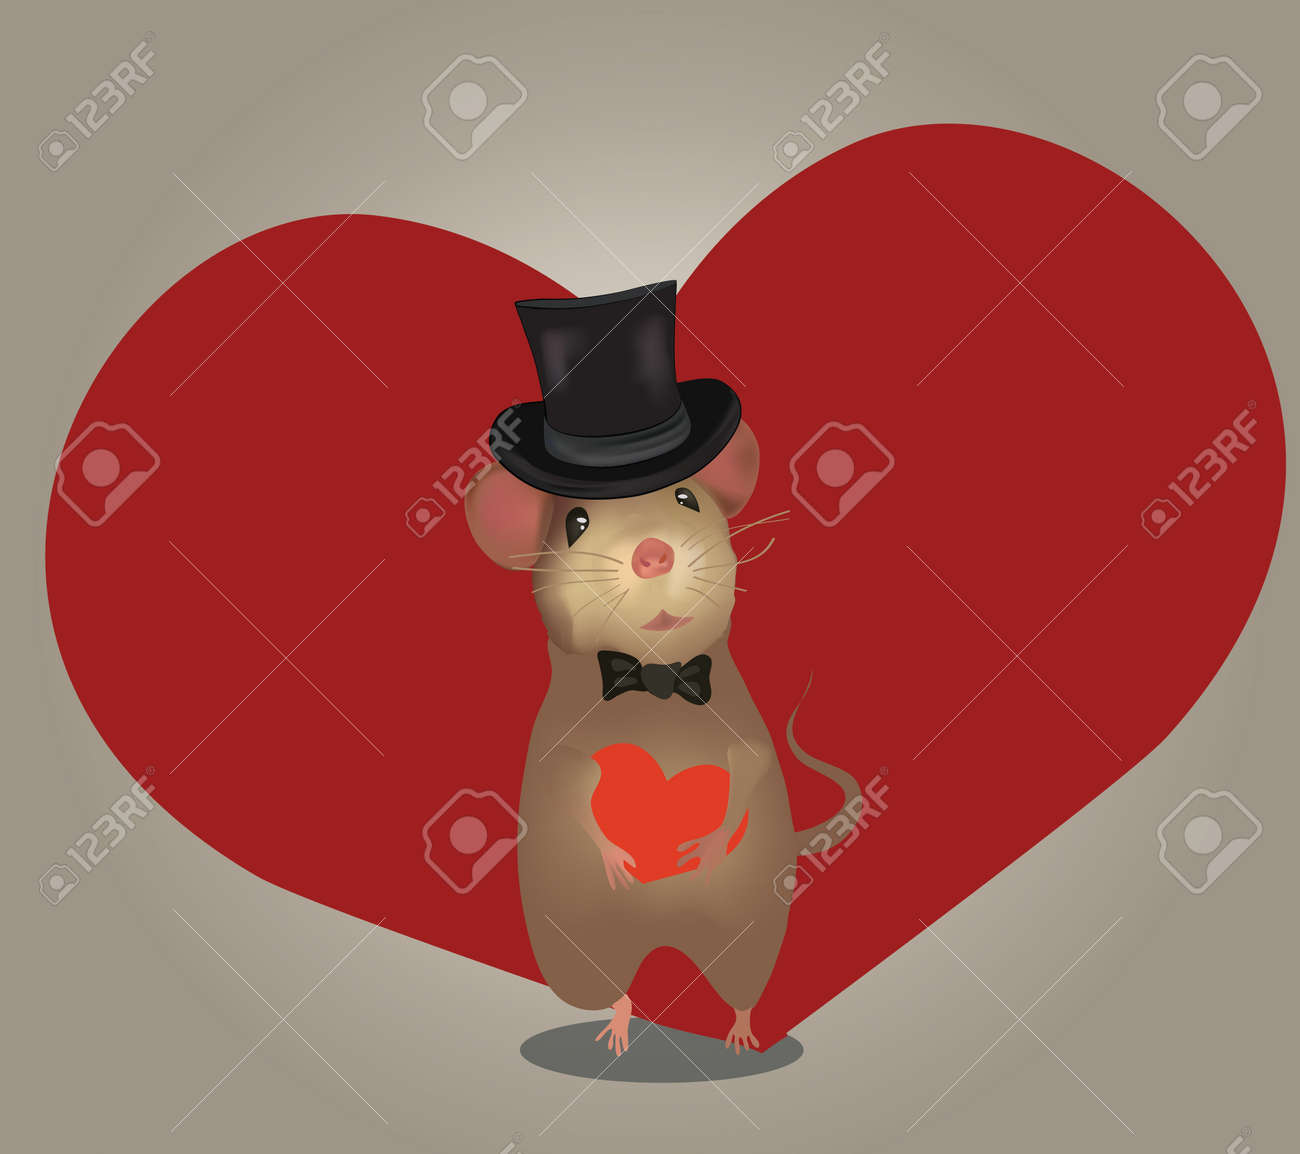 Love Card or Wedding Invitation  Greeting card with  mouse and heart  Valentine s Day Stock Vector - 24911789